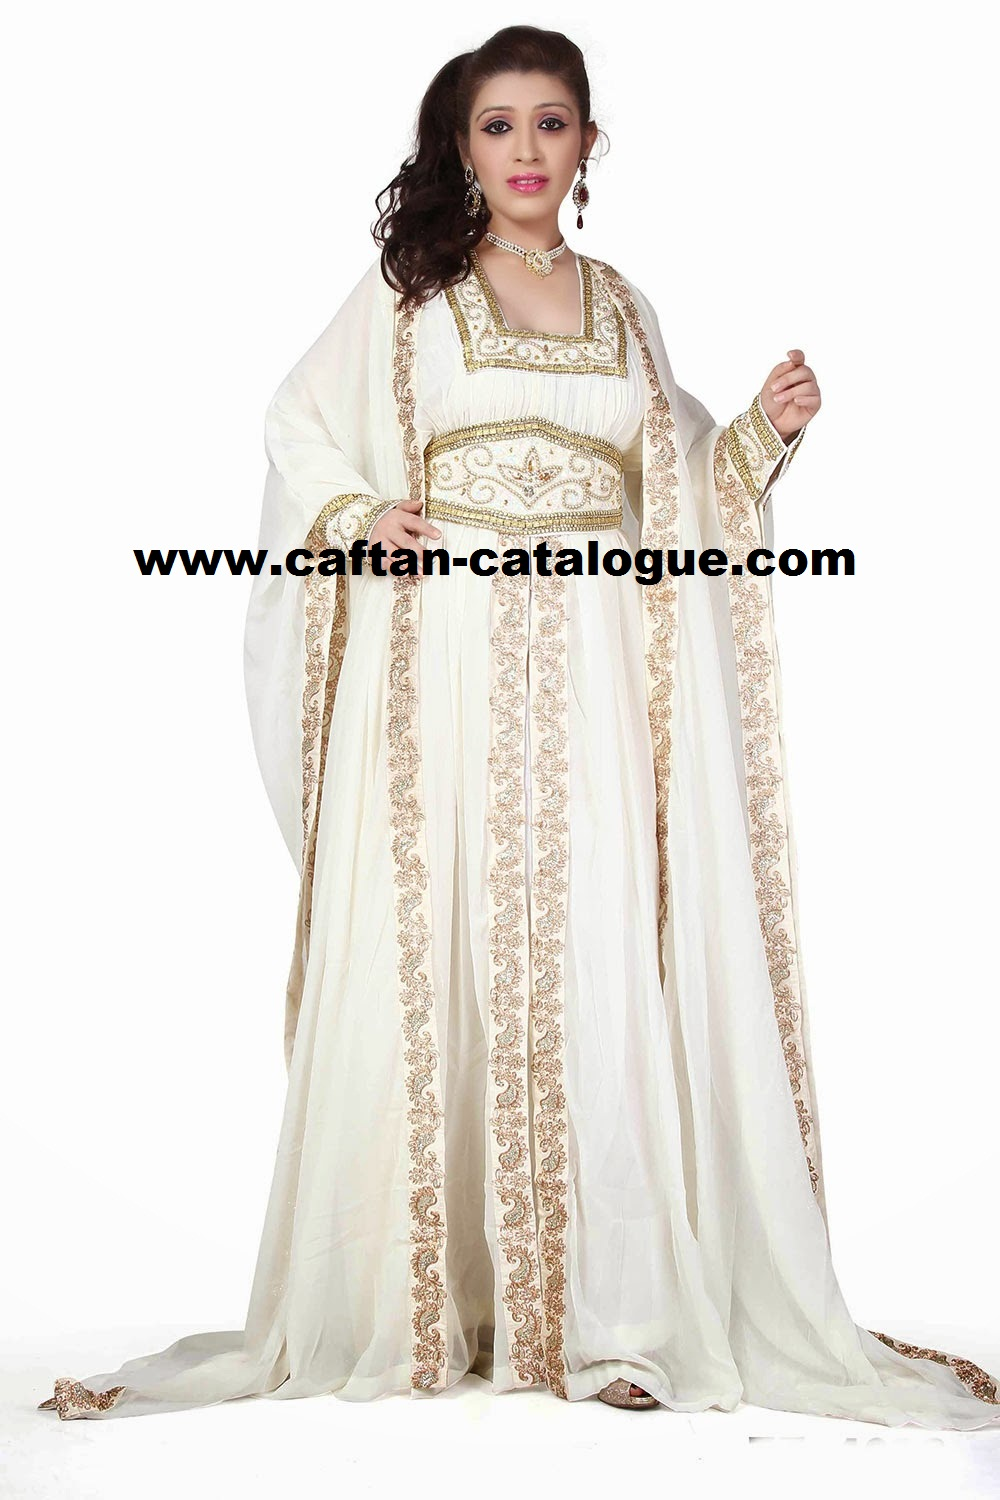 robe marocaine caftan catalogue. Black Bedroom Furniture Sets. Home Design Ideas